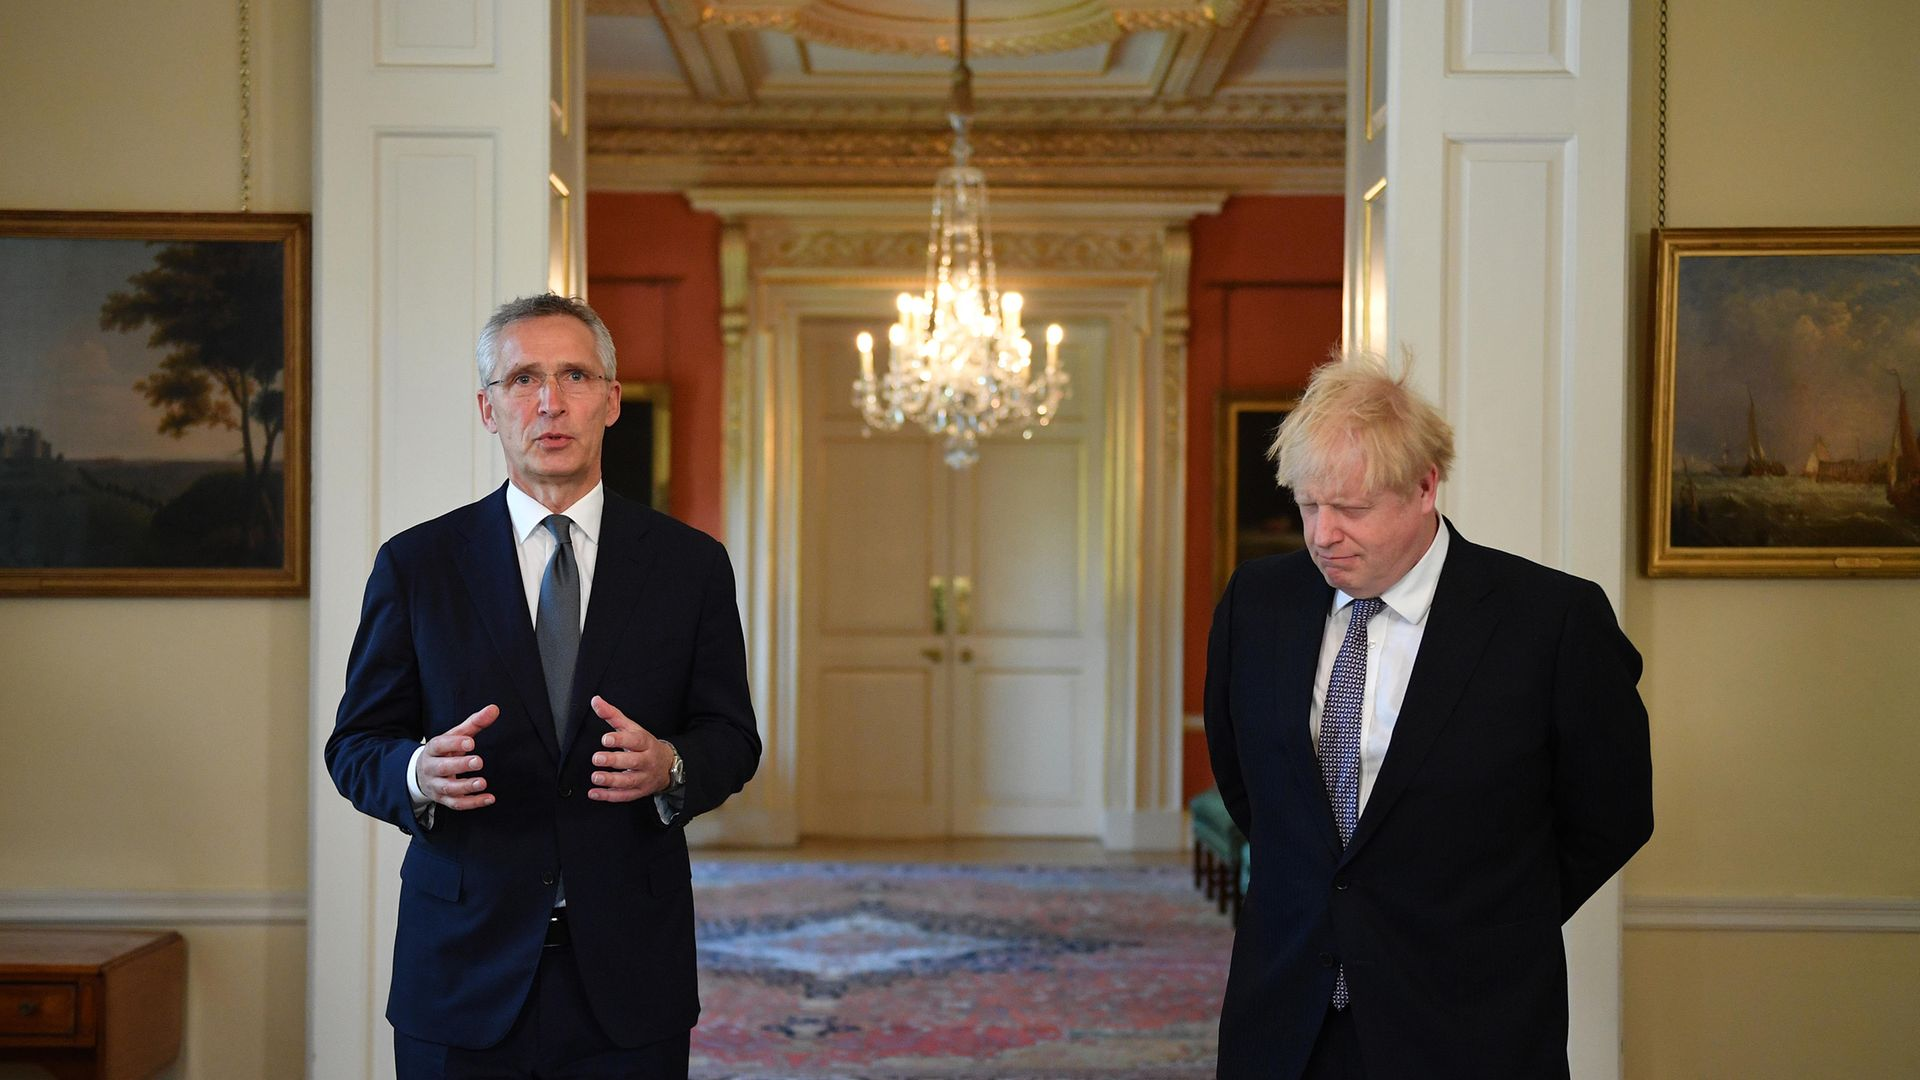 Prime Minister Boris Johnson (right) with Nato Secretary General Jens Stoltenberg in 10 Downing Street - Credit: PA